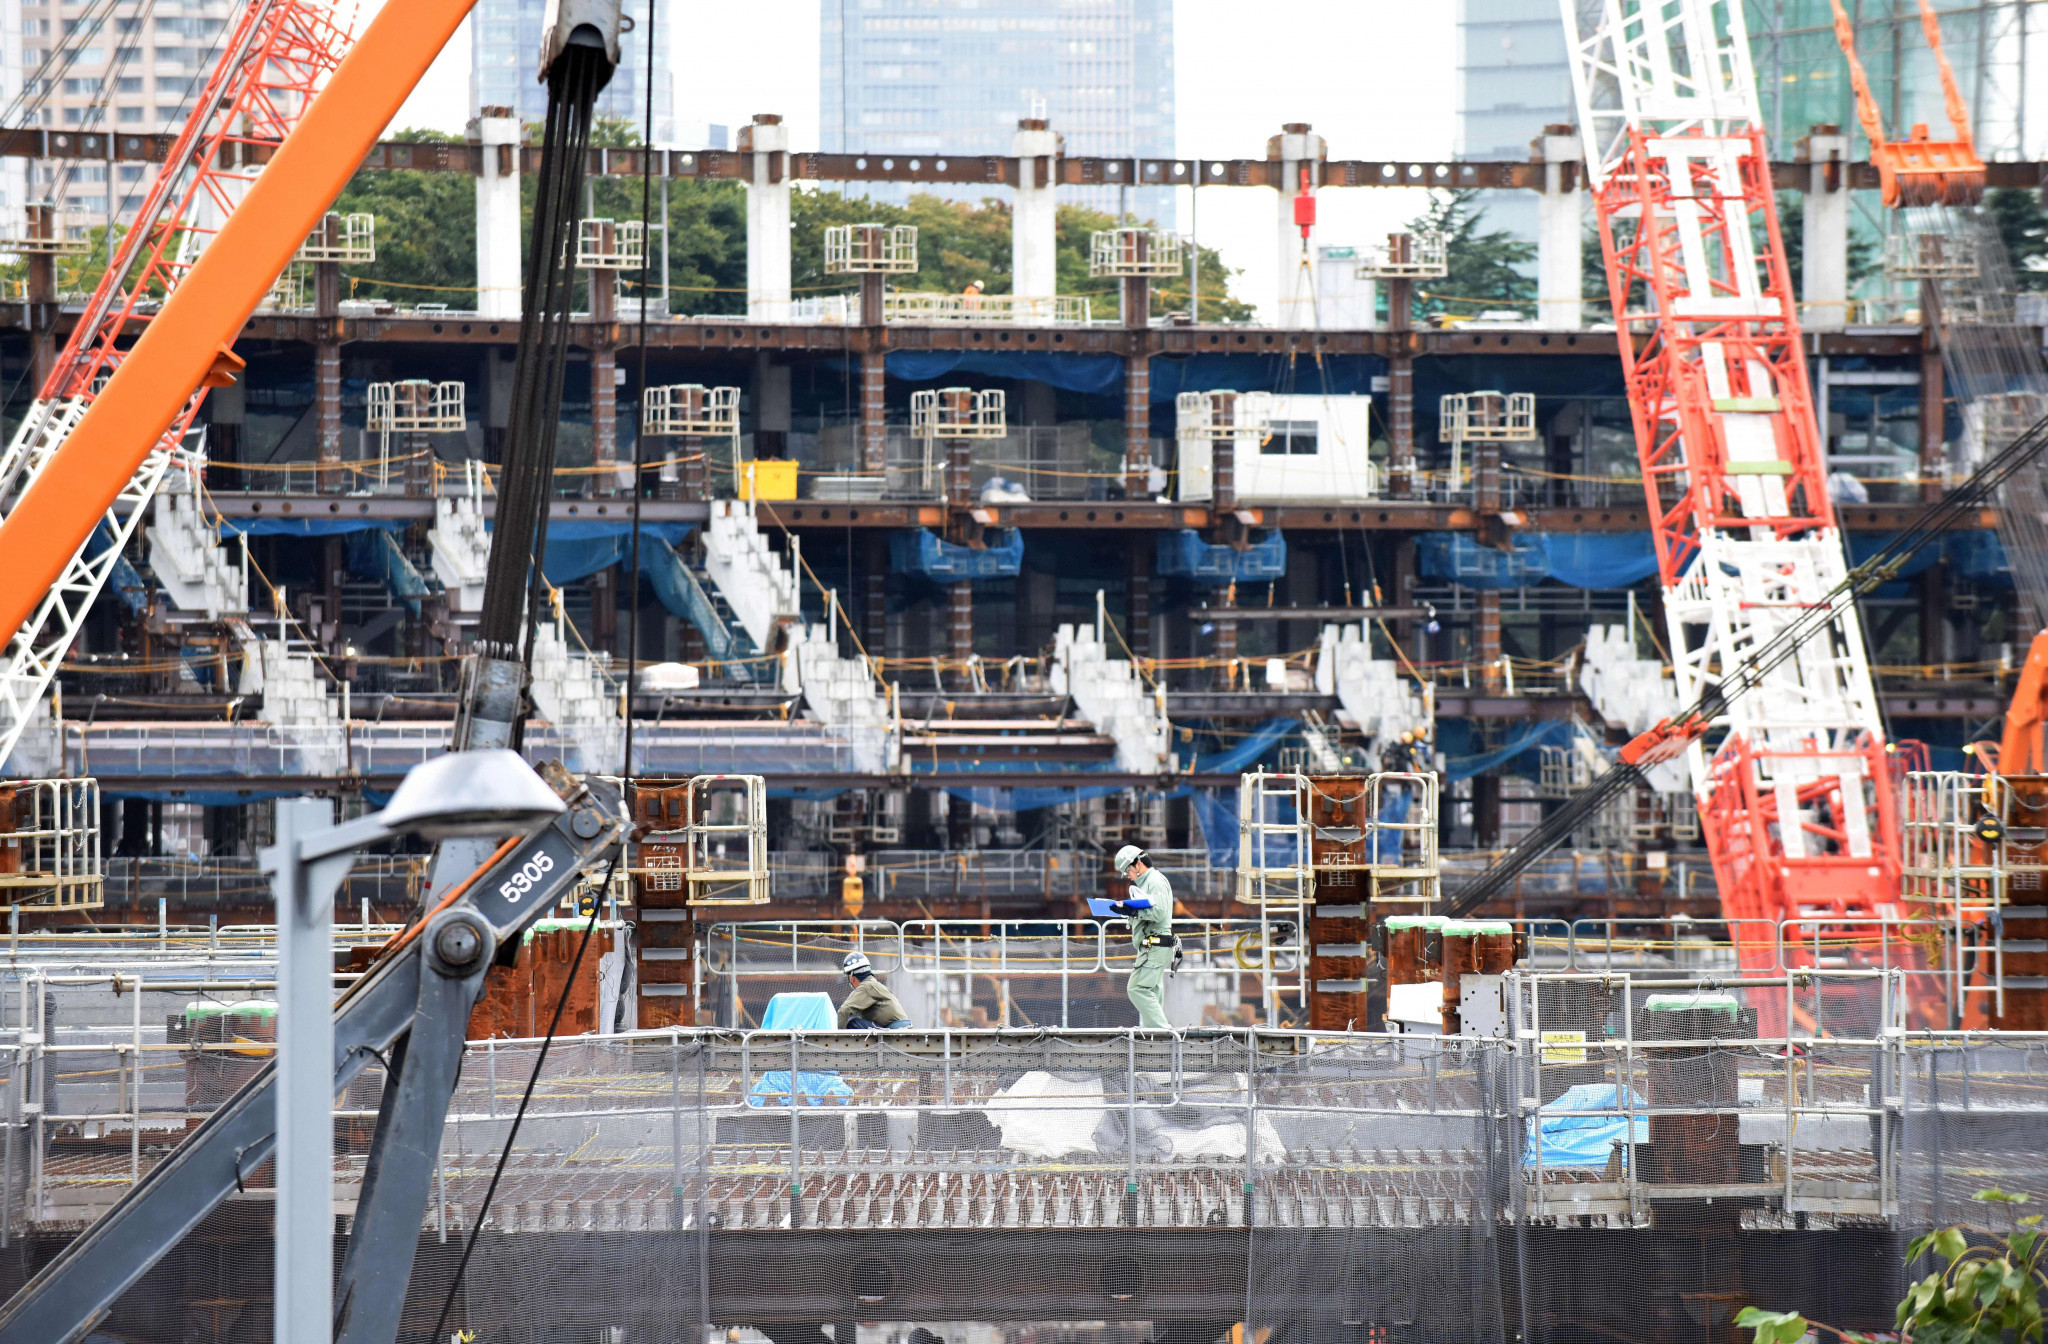 Work at the Tokyo 2020 Olympic Stadium construction site began in December 2016 ©Getty Images